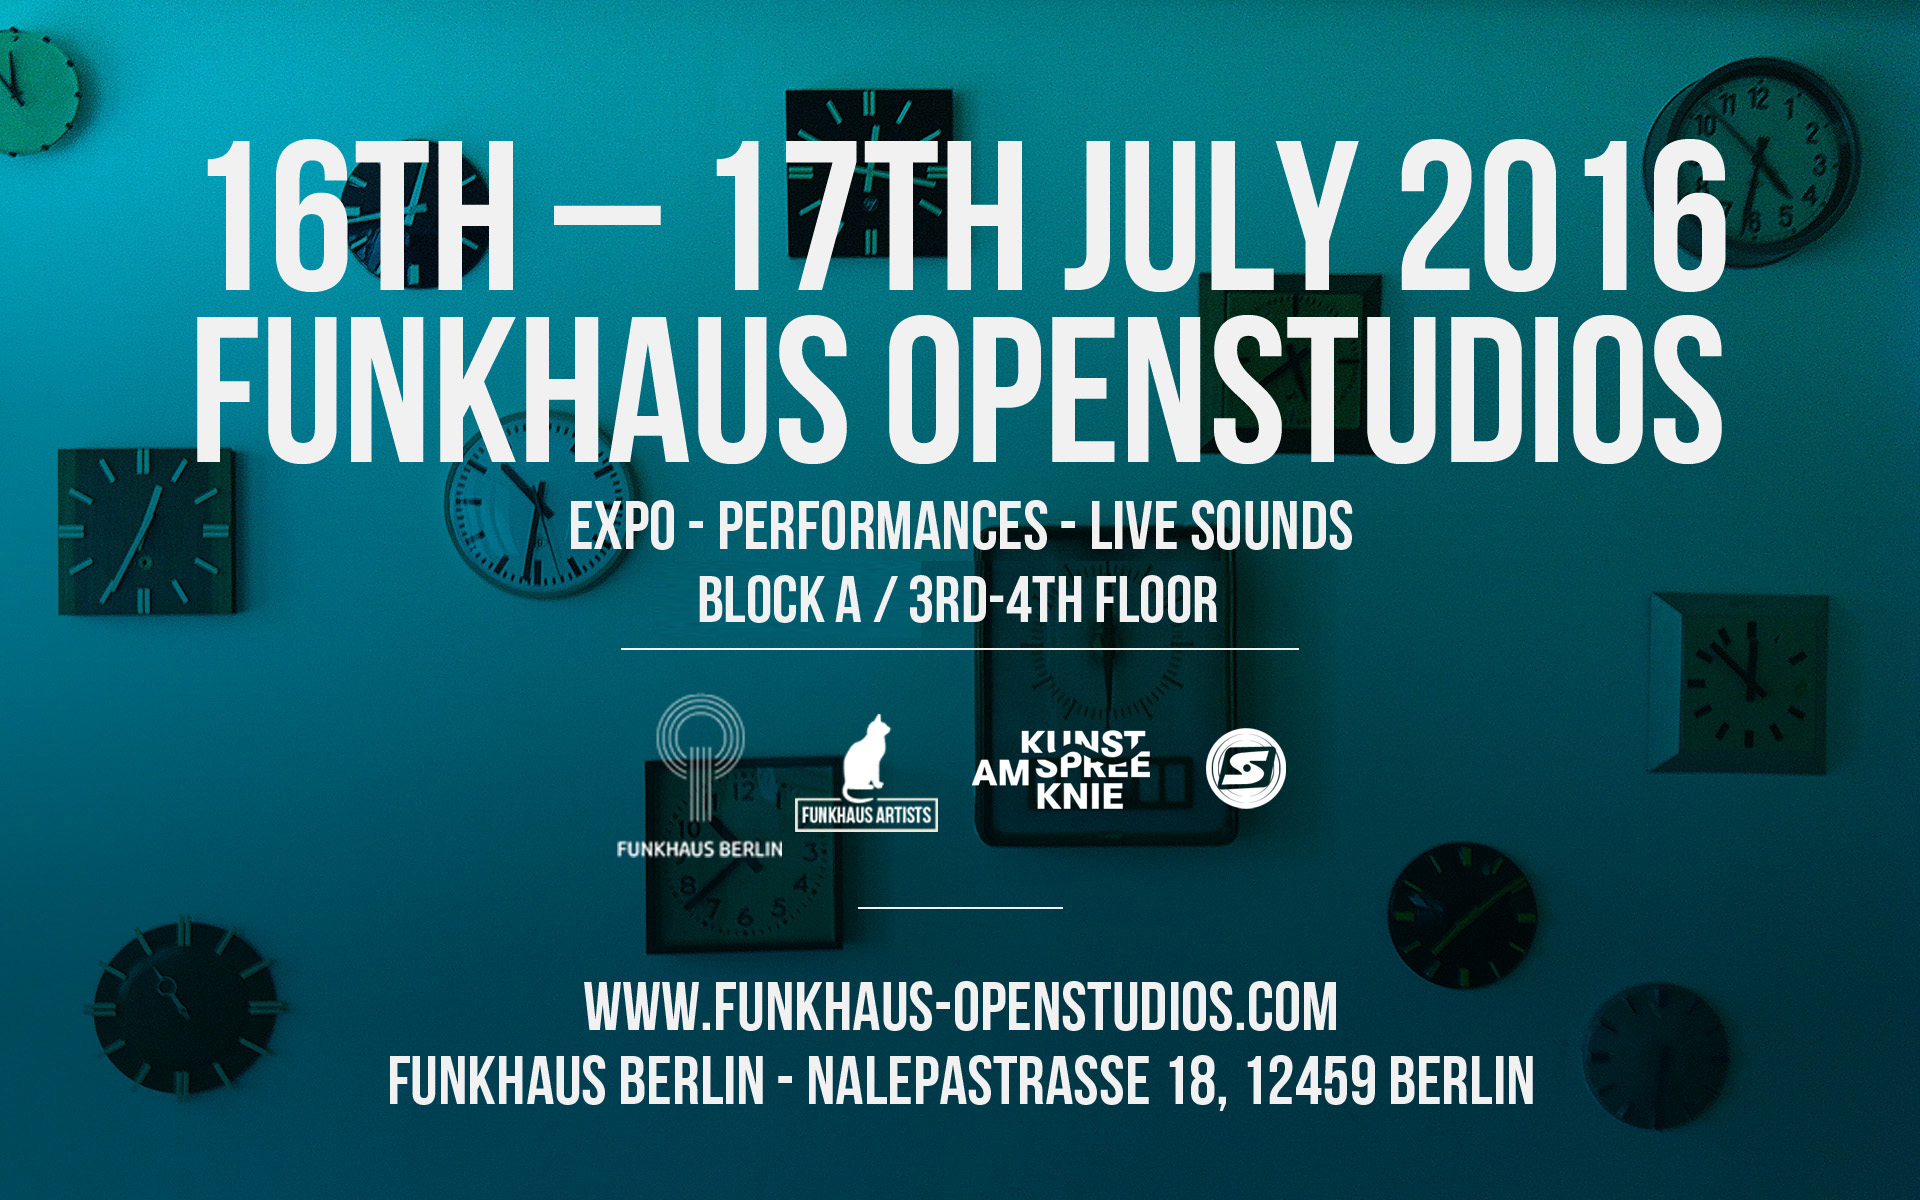 FUNKHAUS OPENSTUDIOS 16th - 17th JULY